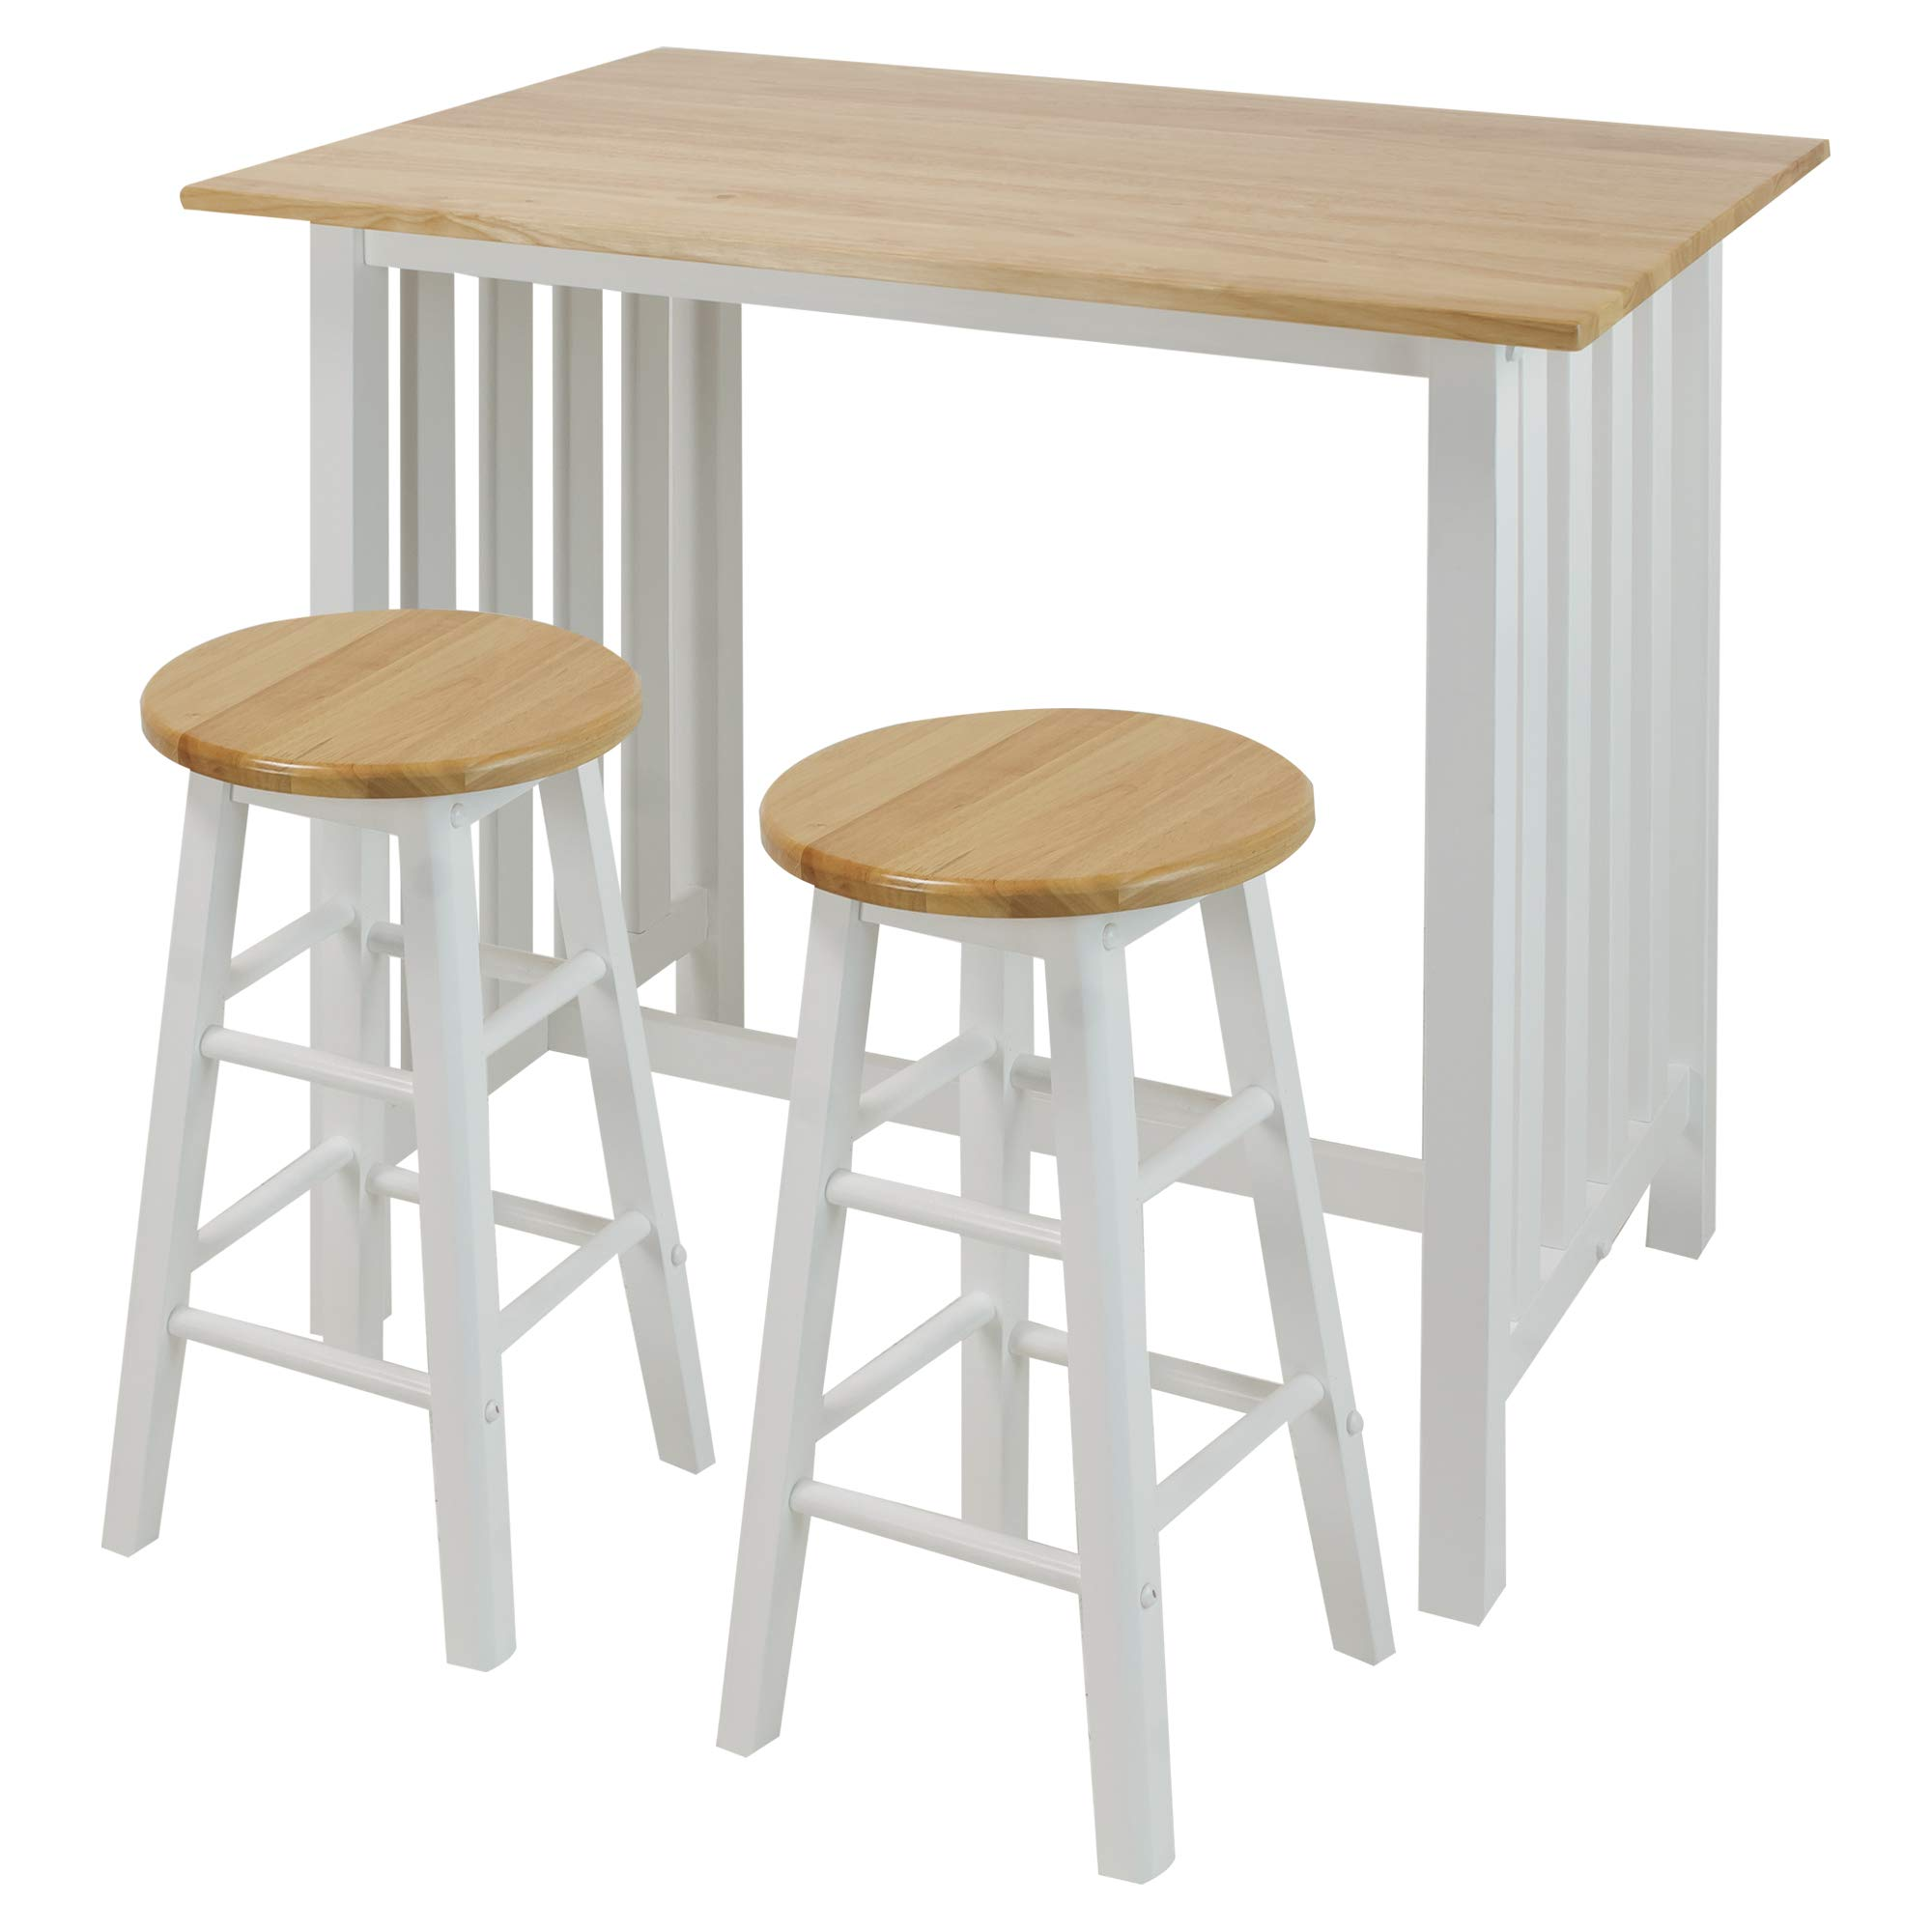 Casual Home 3-Piece Breakfast Set with Solid American Hardwood Top, White by Casual Home